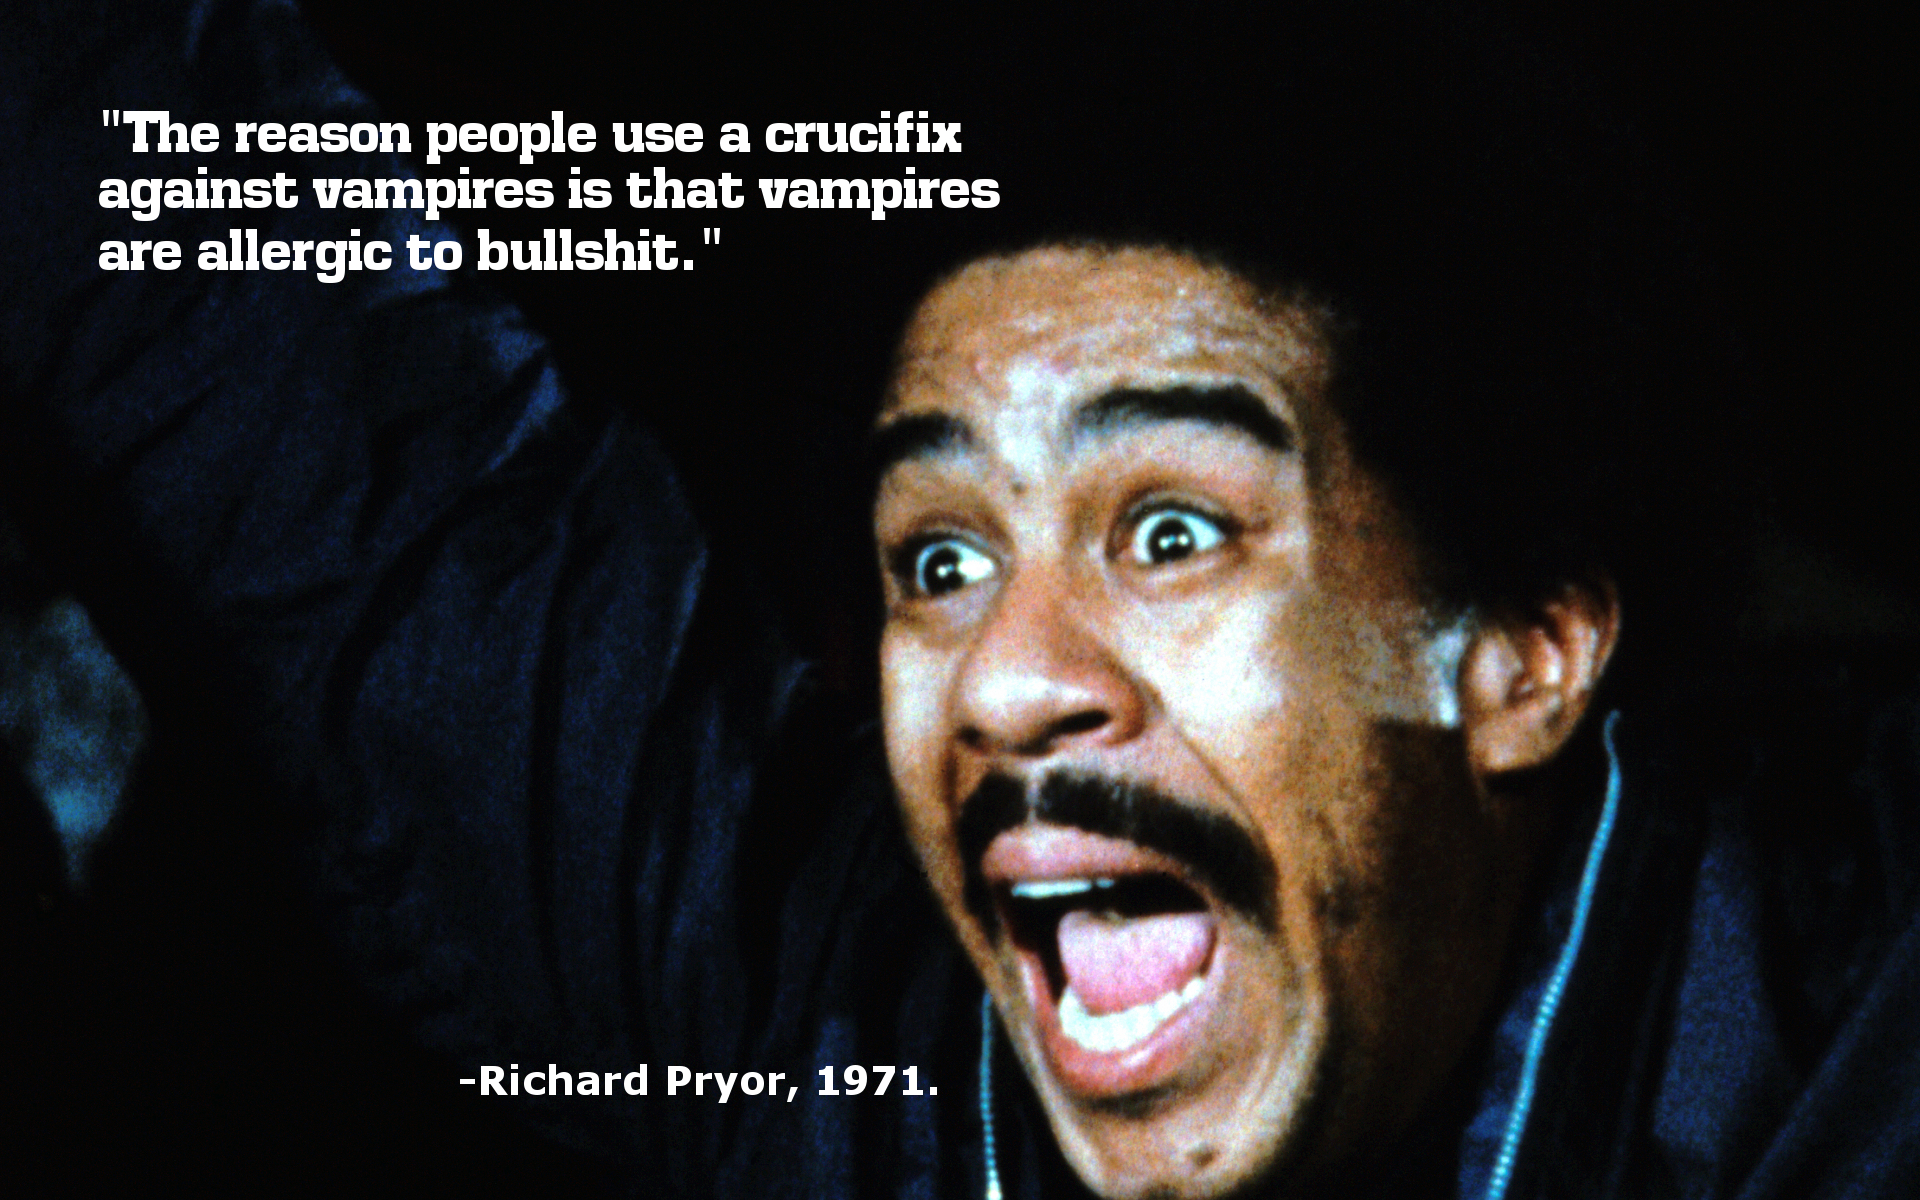 Richard Pryor quote #2